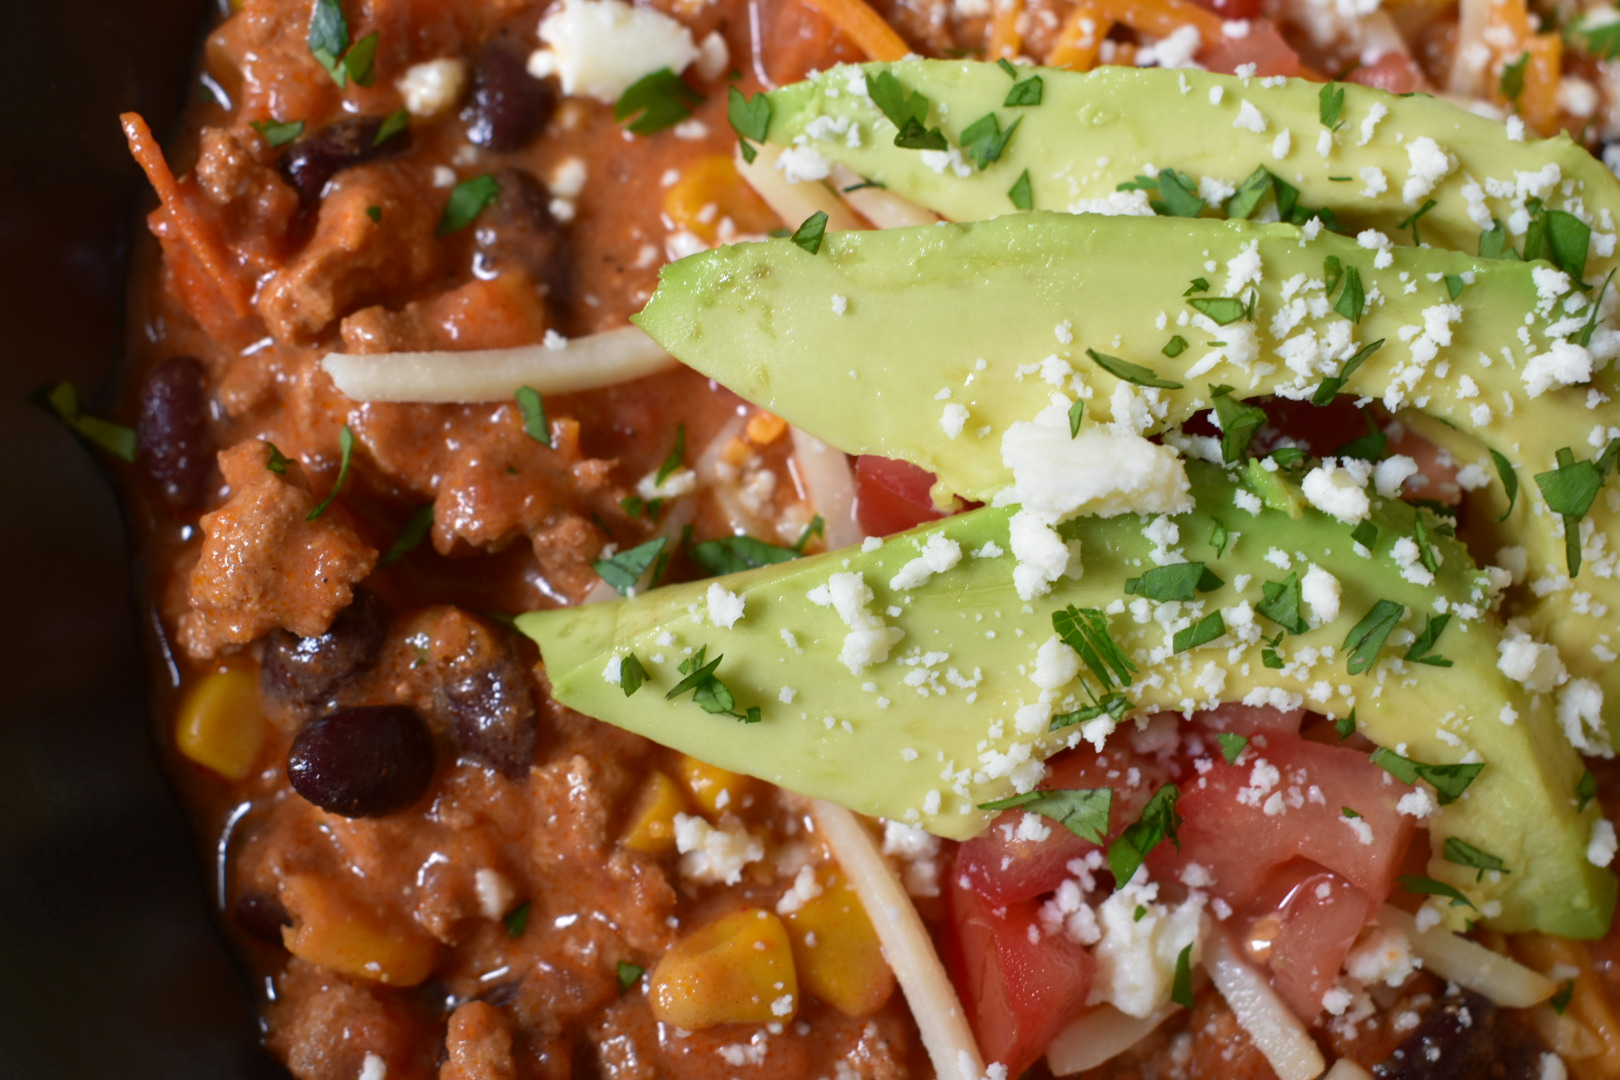 Healthy Spicy Chicken Chili - Cooking Up Happiness